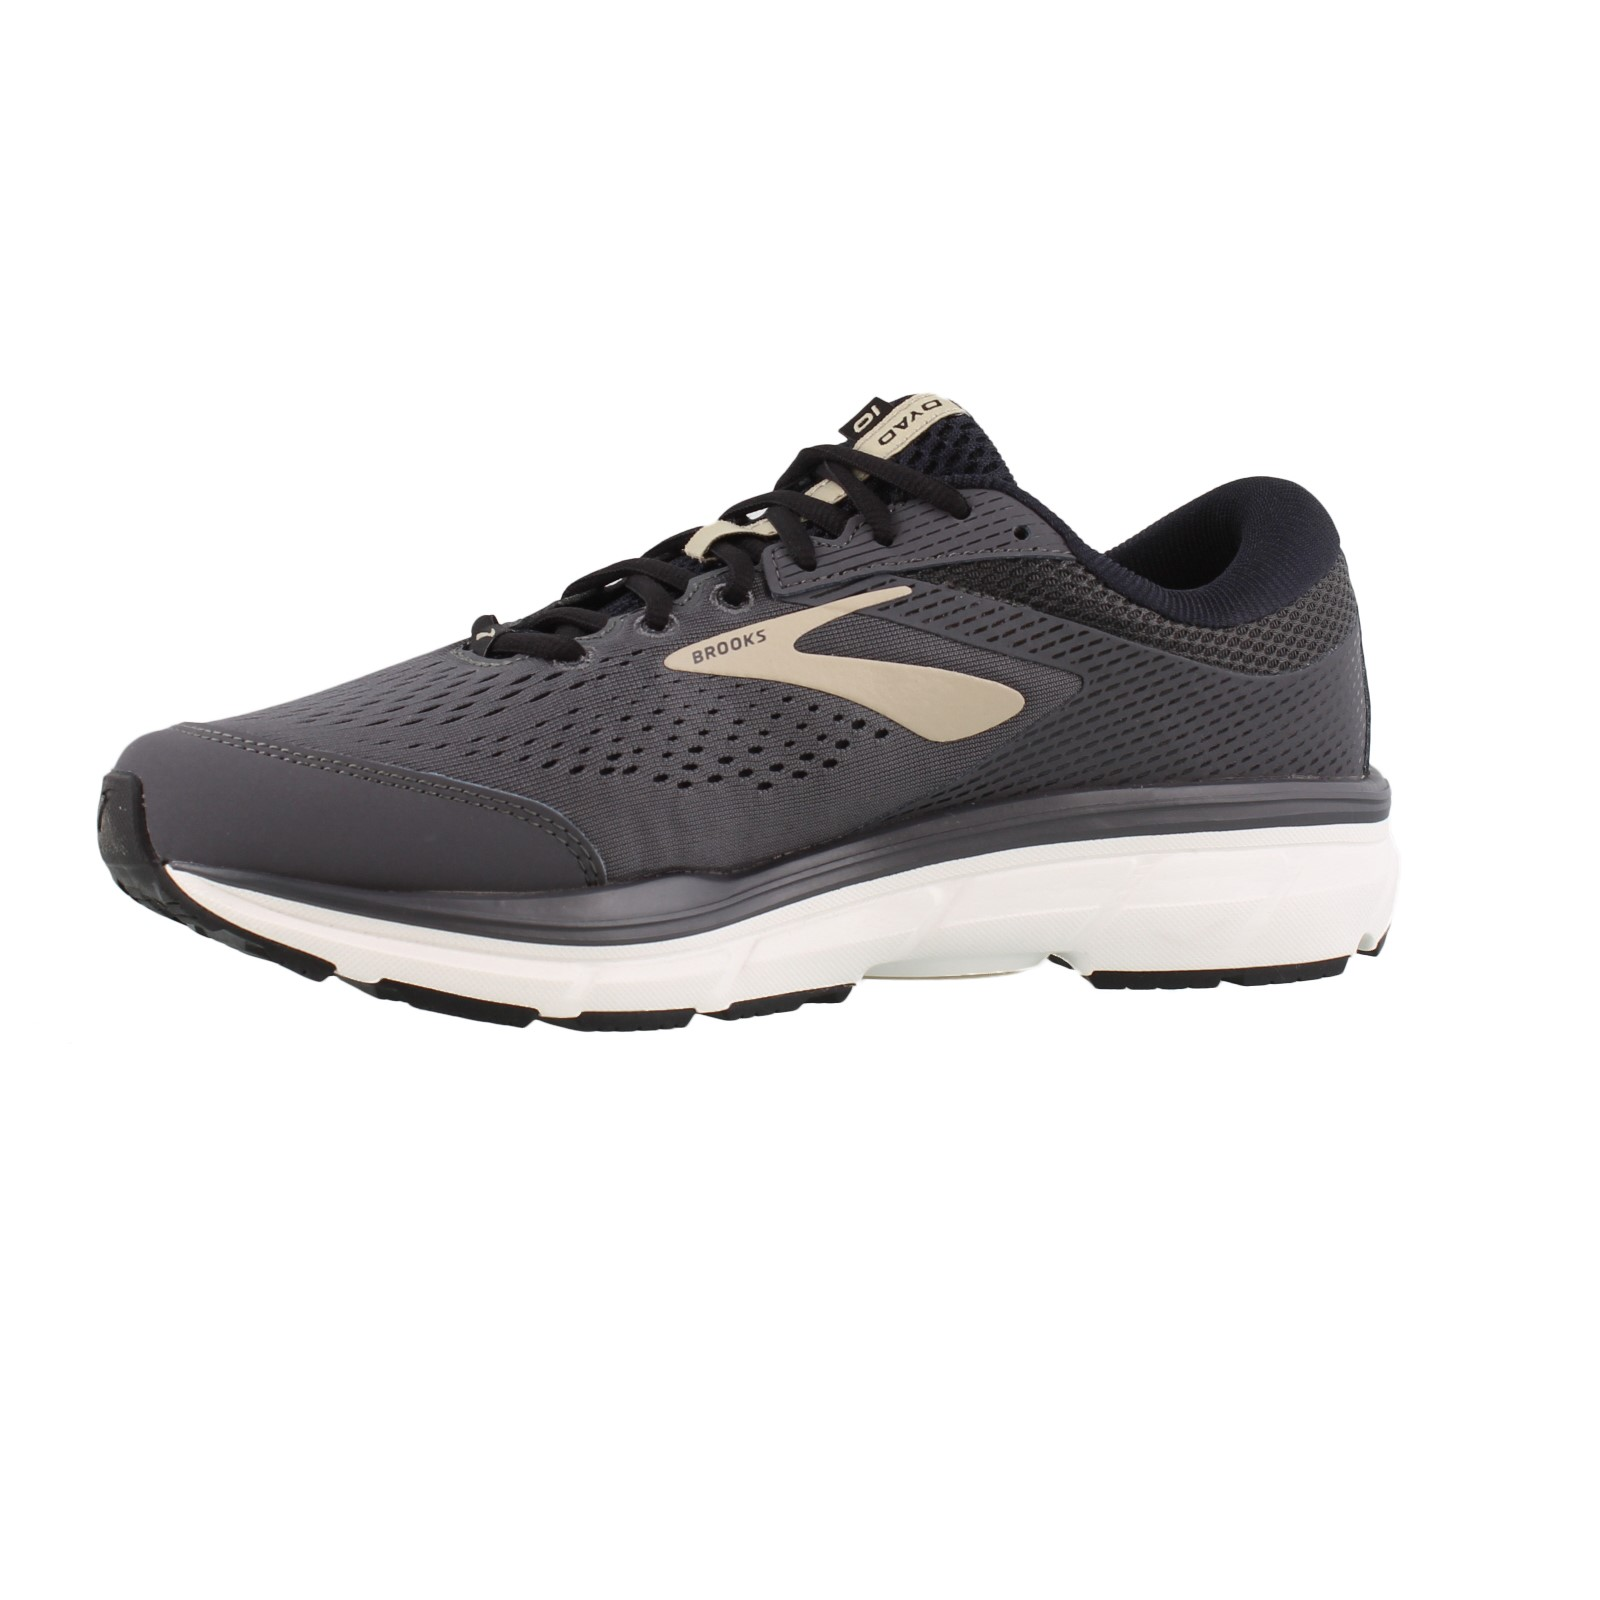 f88b6ebe5db Previous. default view · 360-03 · 360-07 · 360-12 · 360-19. Next. add to  favorites. Men s Brooks